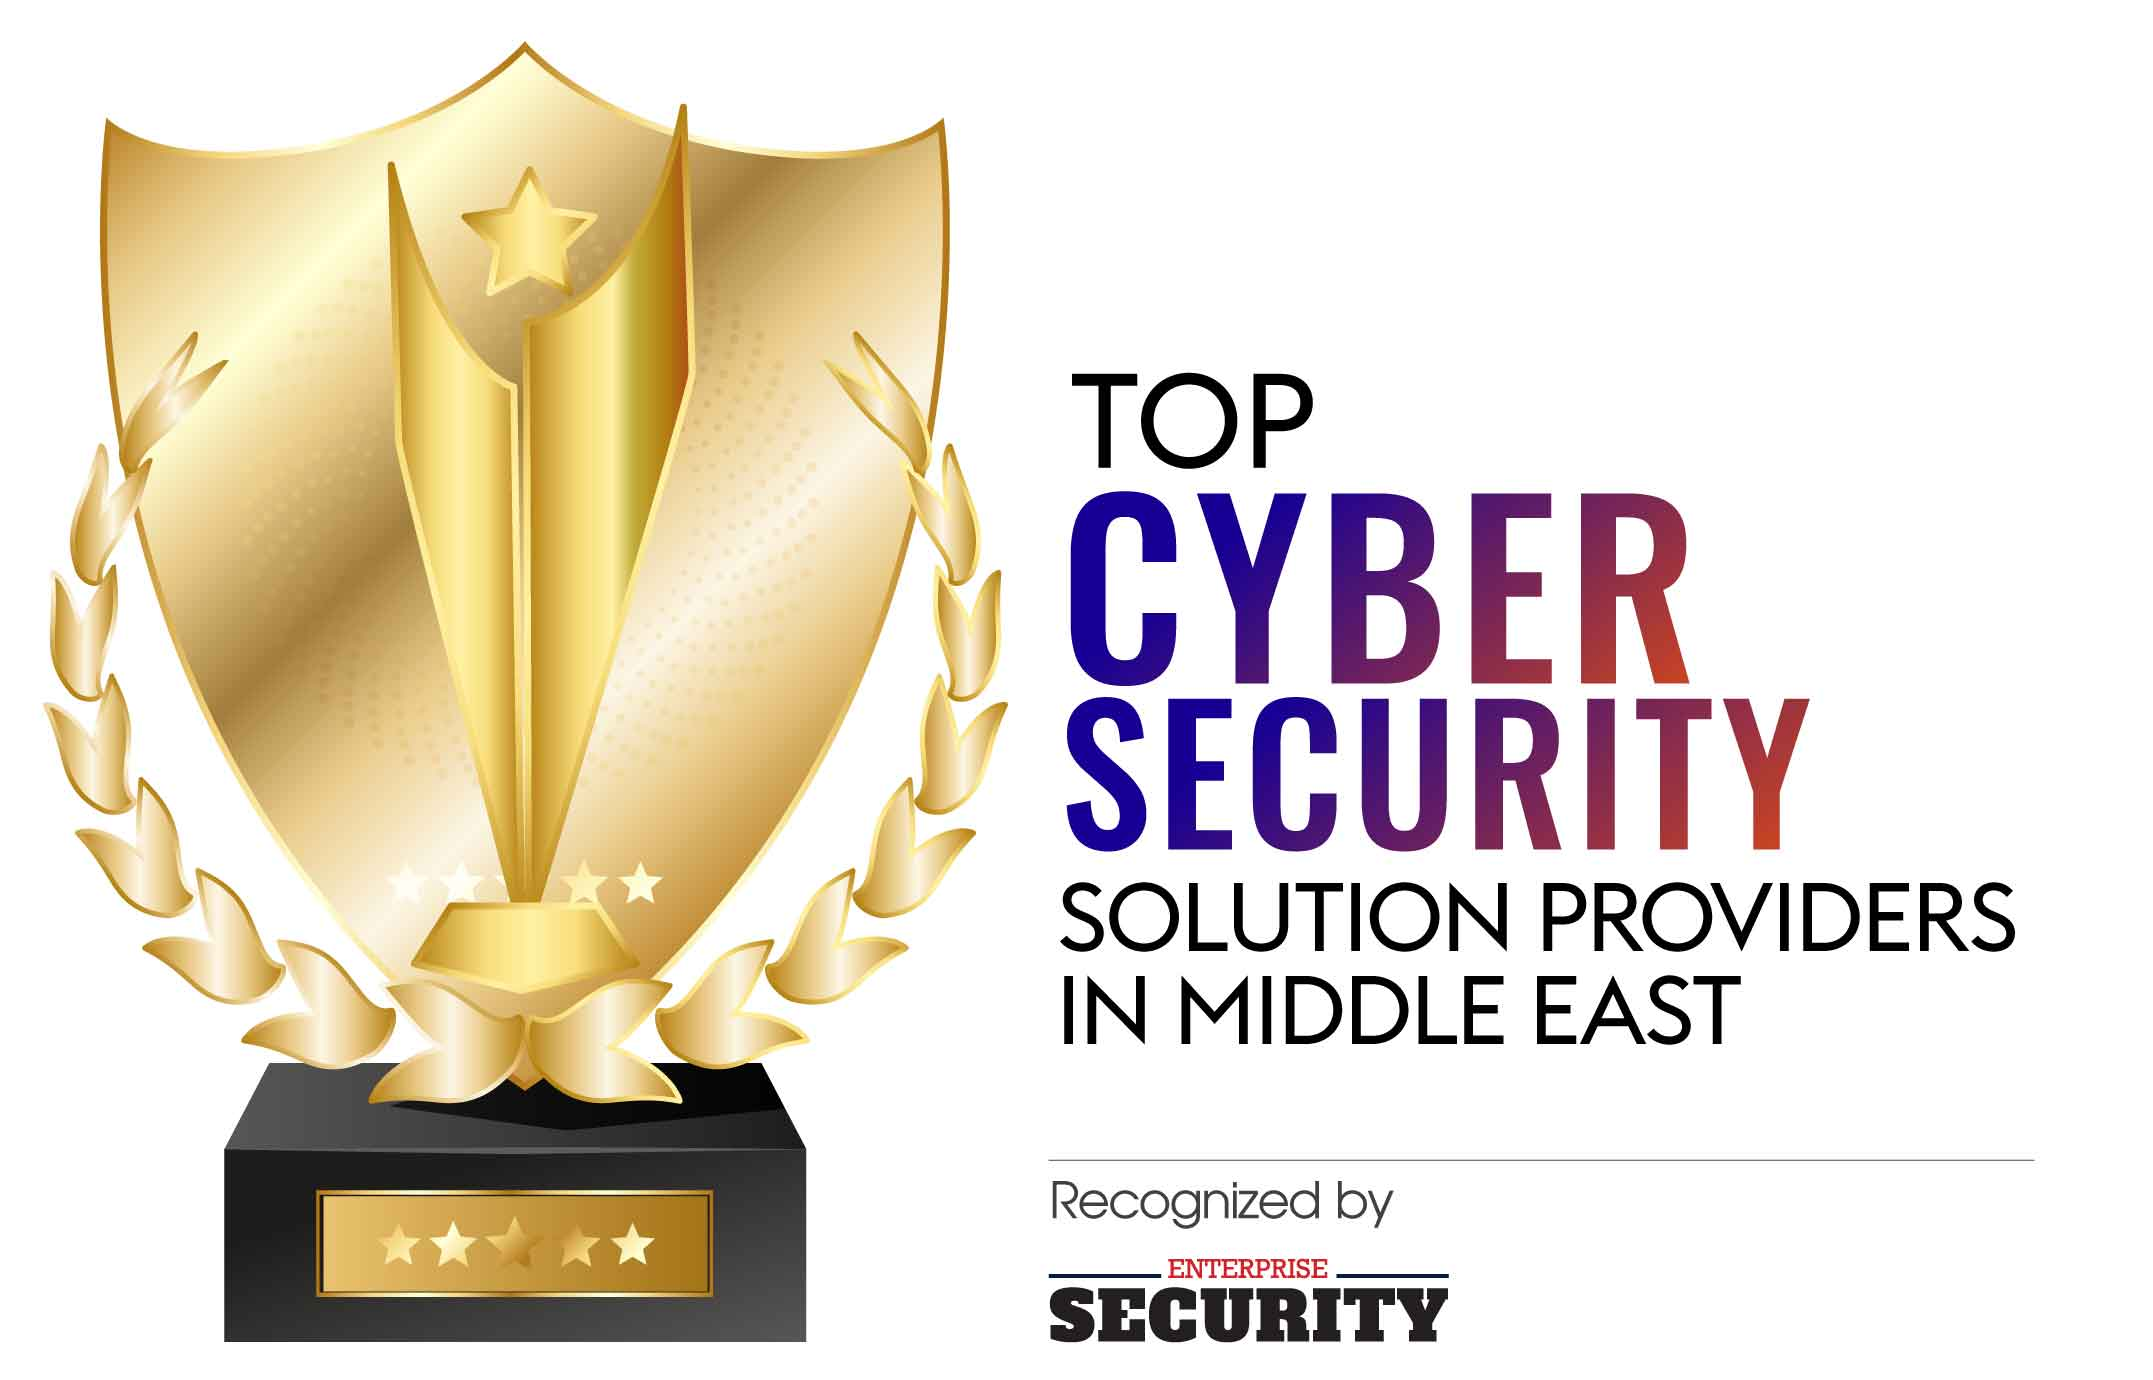 Top Cyber Security Solution Companies in Middle East